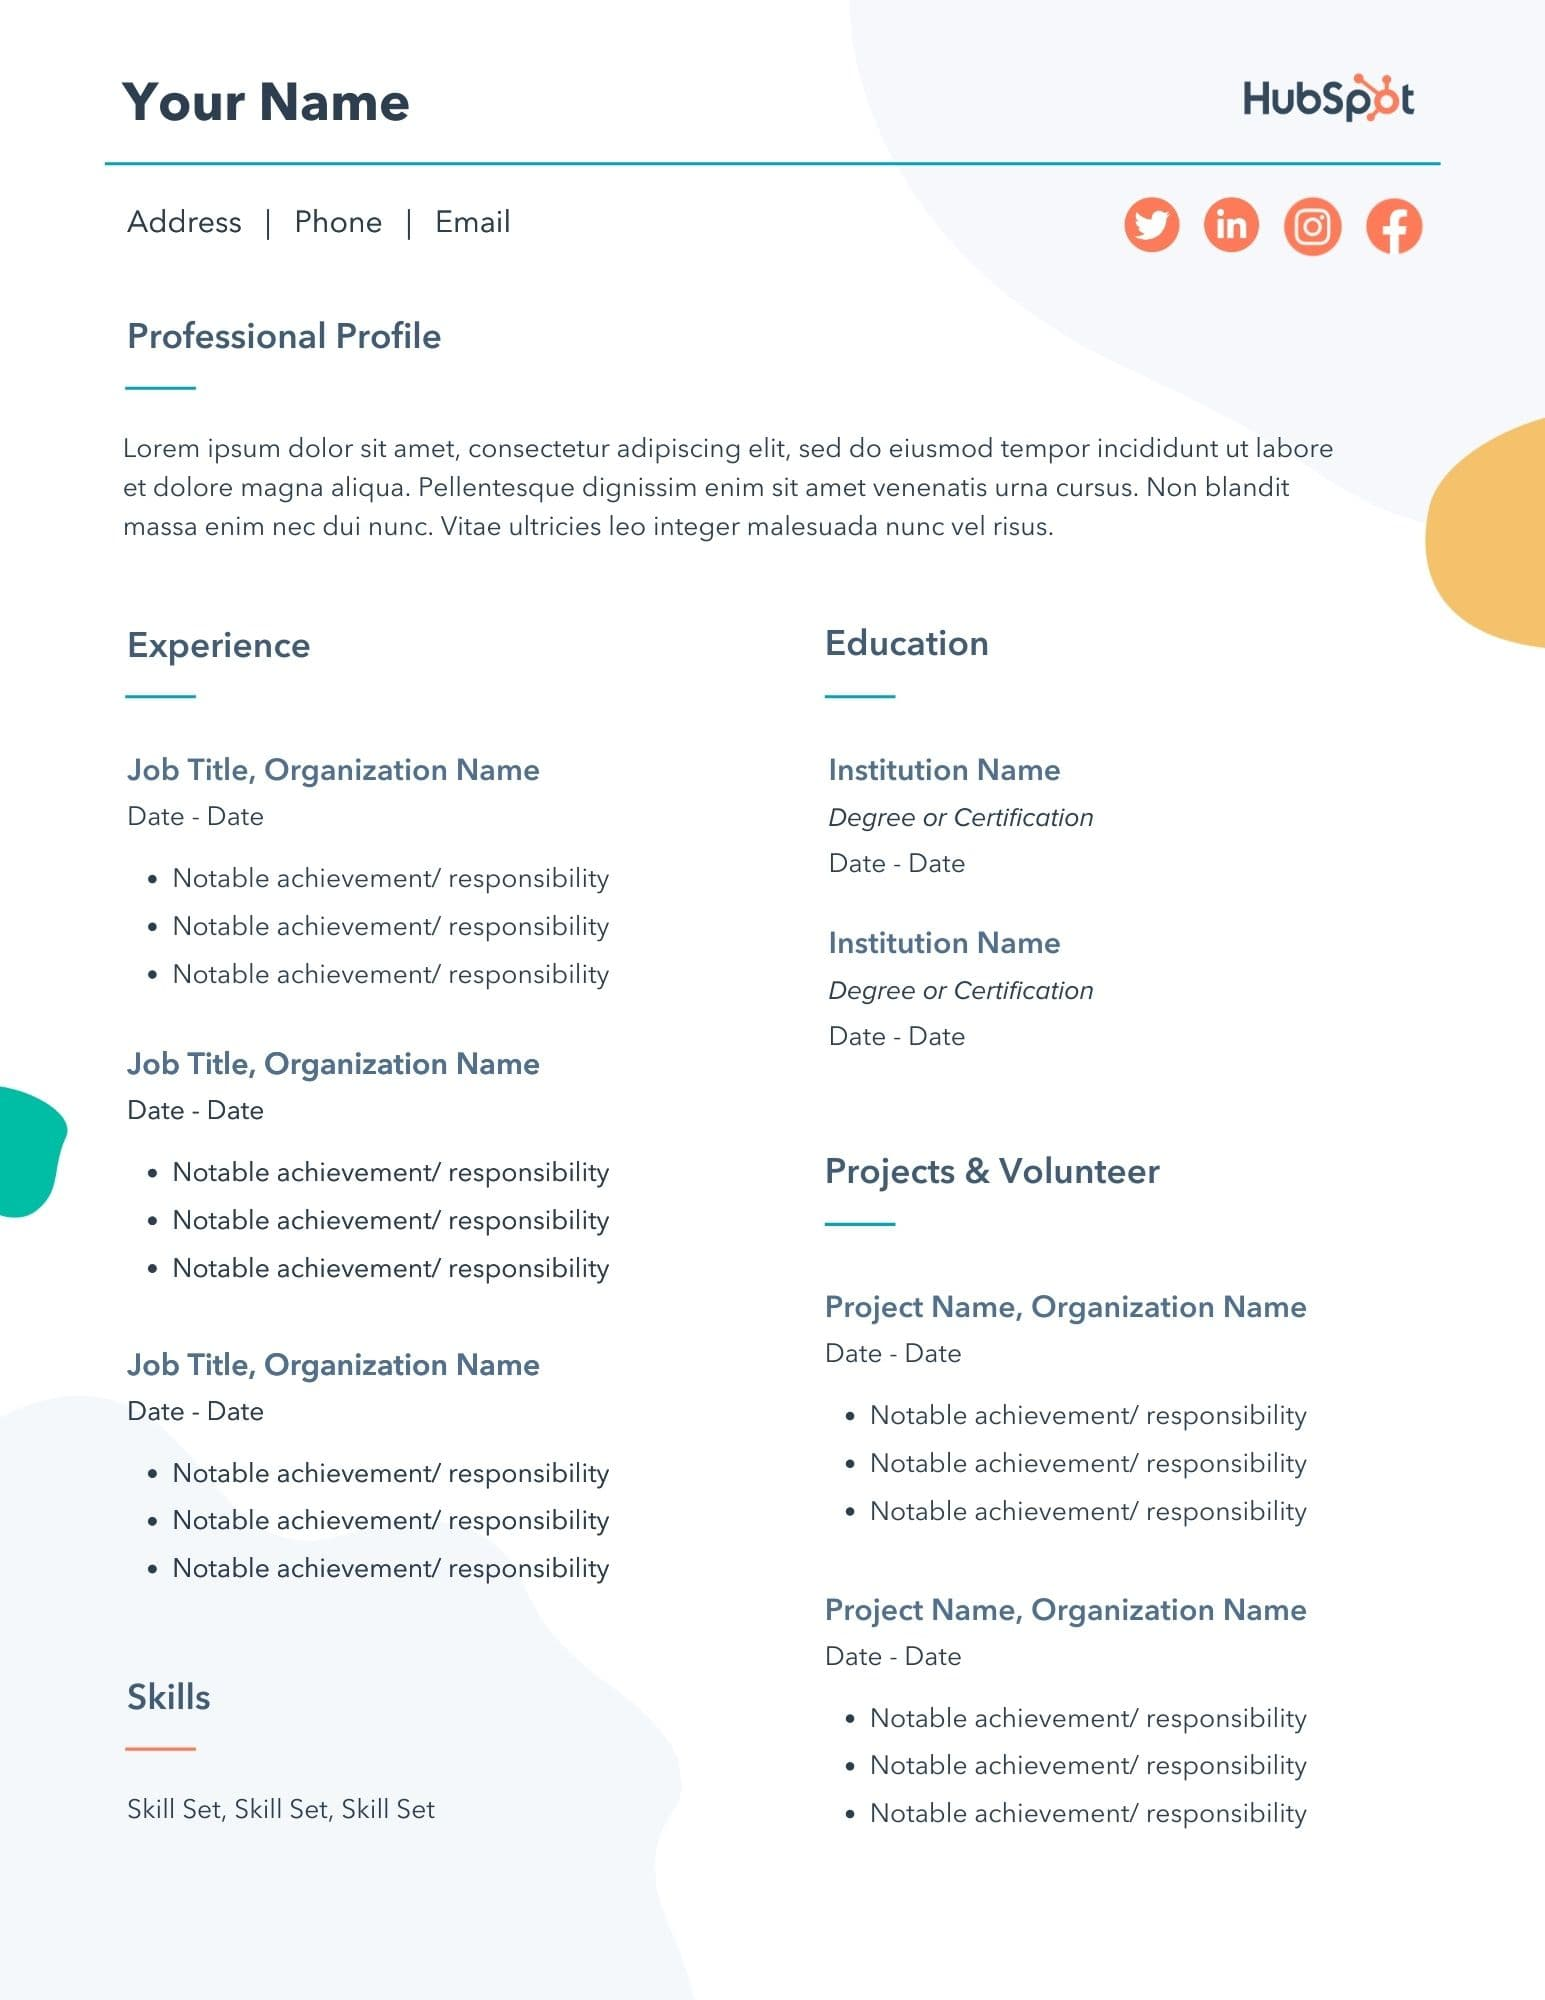 free resume templates for microsoft word to make your own best document format template Resume Best Resume Document Format